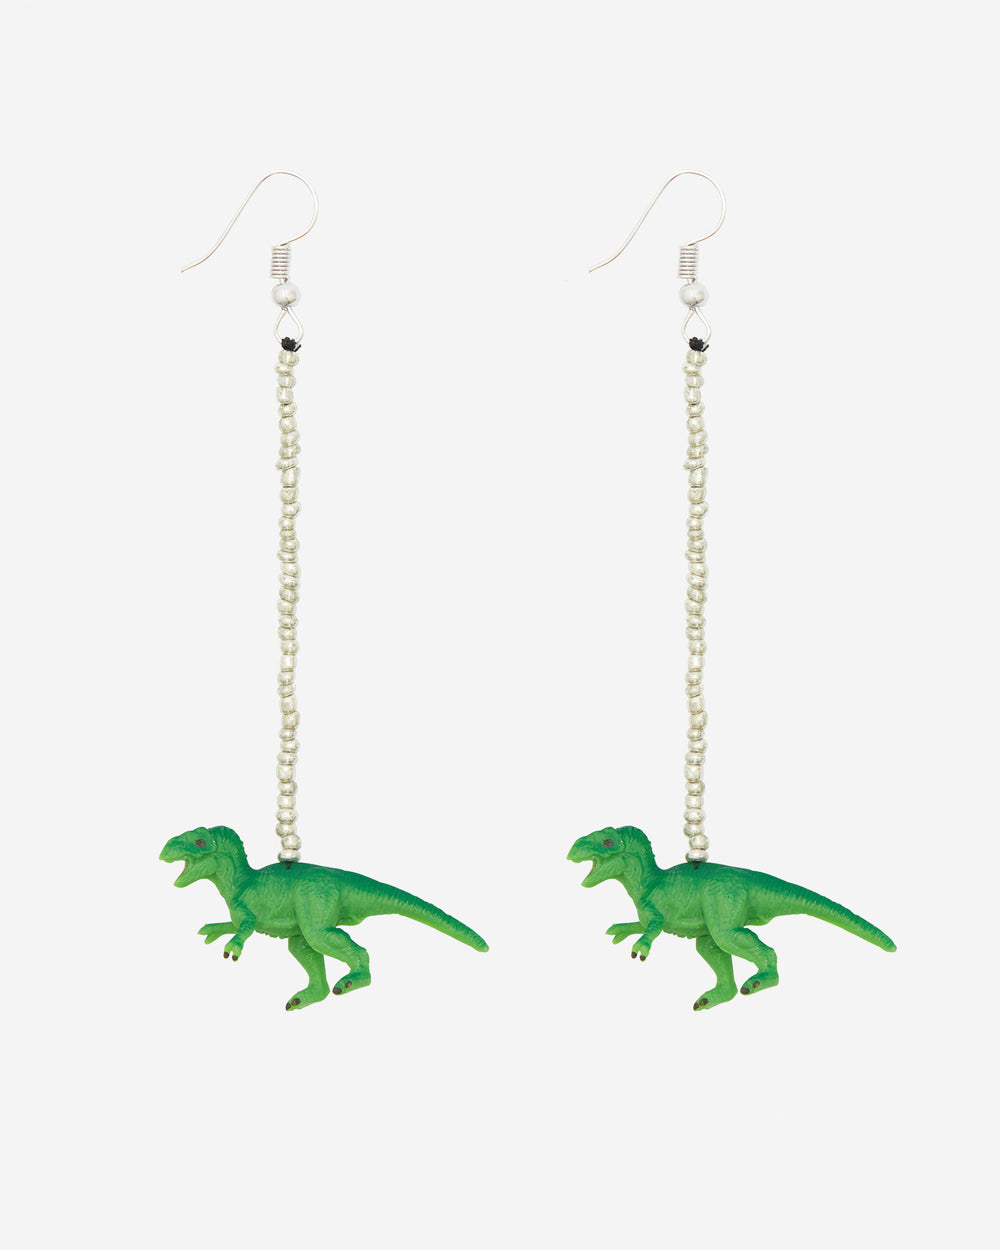 T-Rex Hanging Earrings